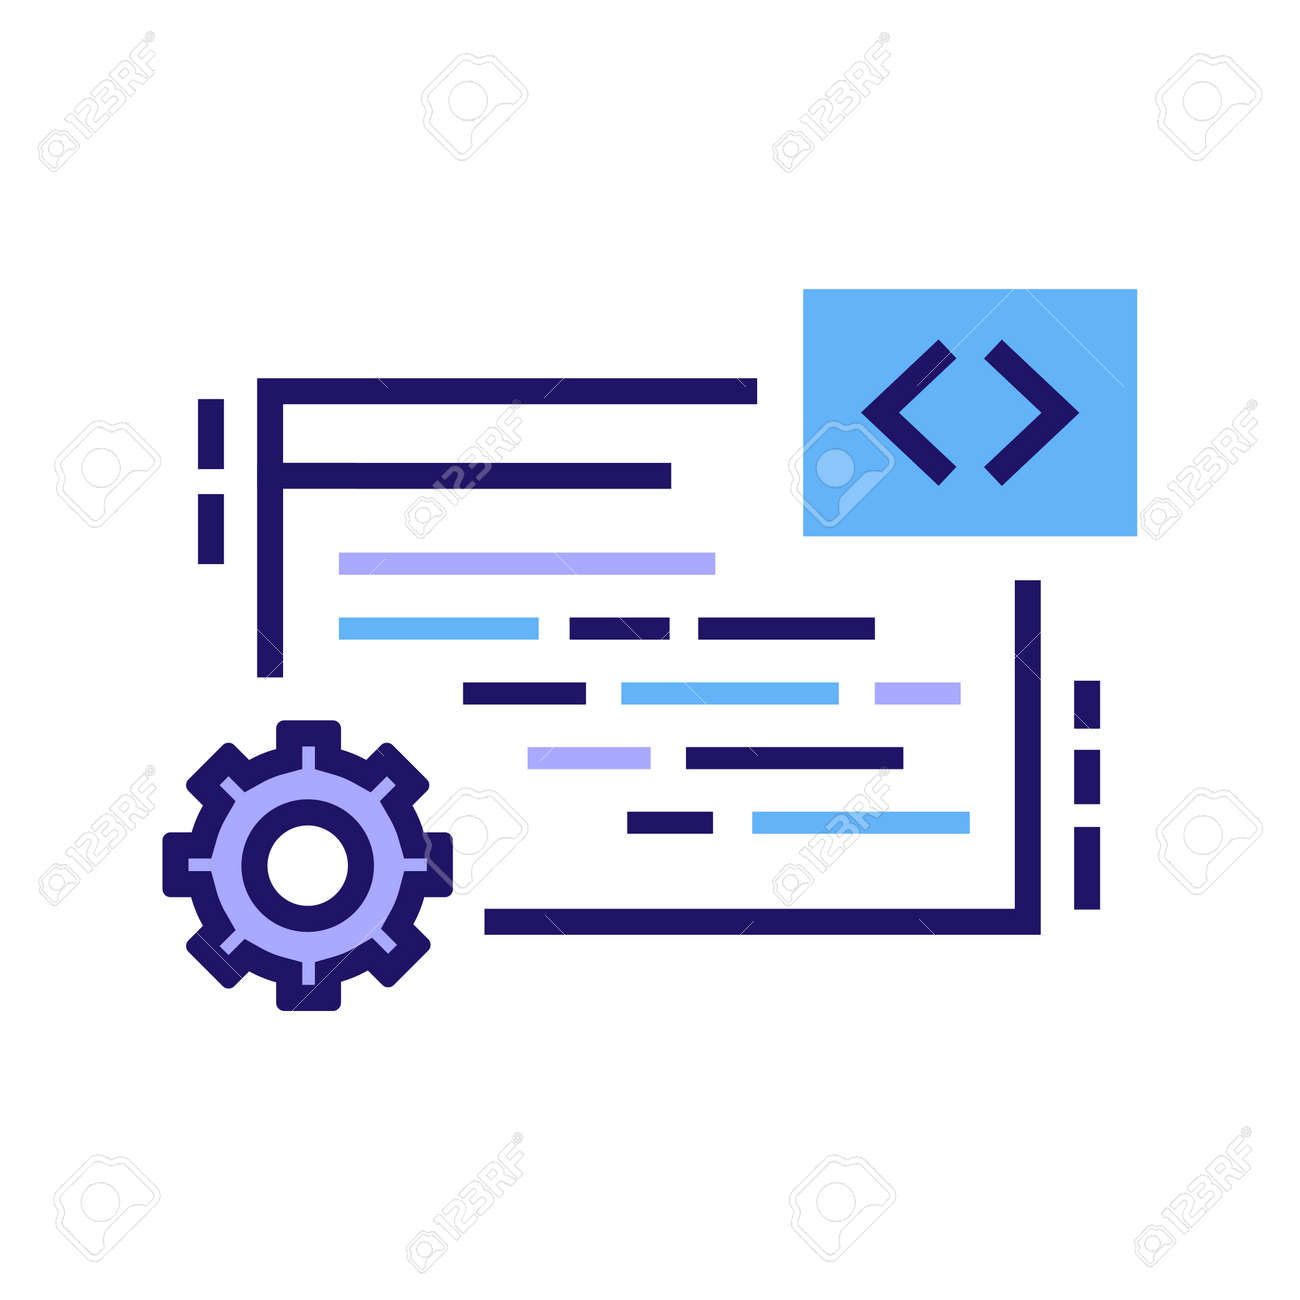 It Courses Color Line Icon Programming Coding Learning Software Royalty Free Cliparts Vectors And Stock Illustration Image 141865736